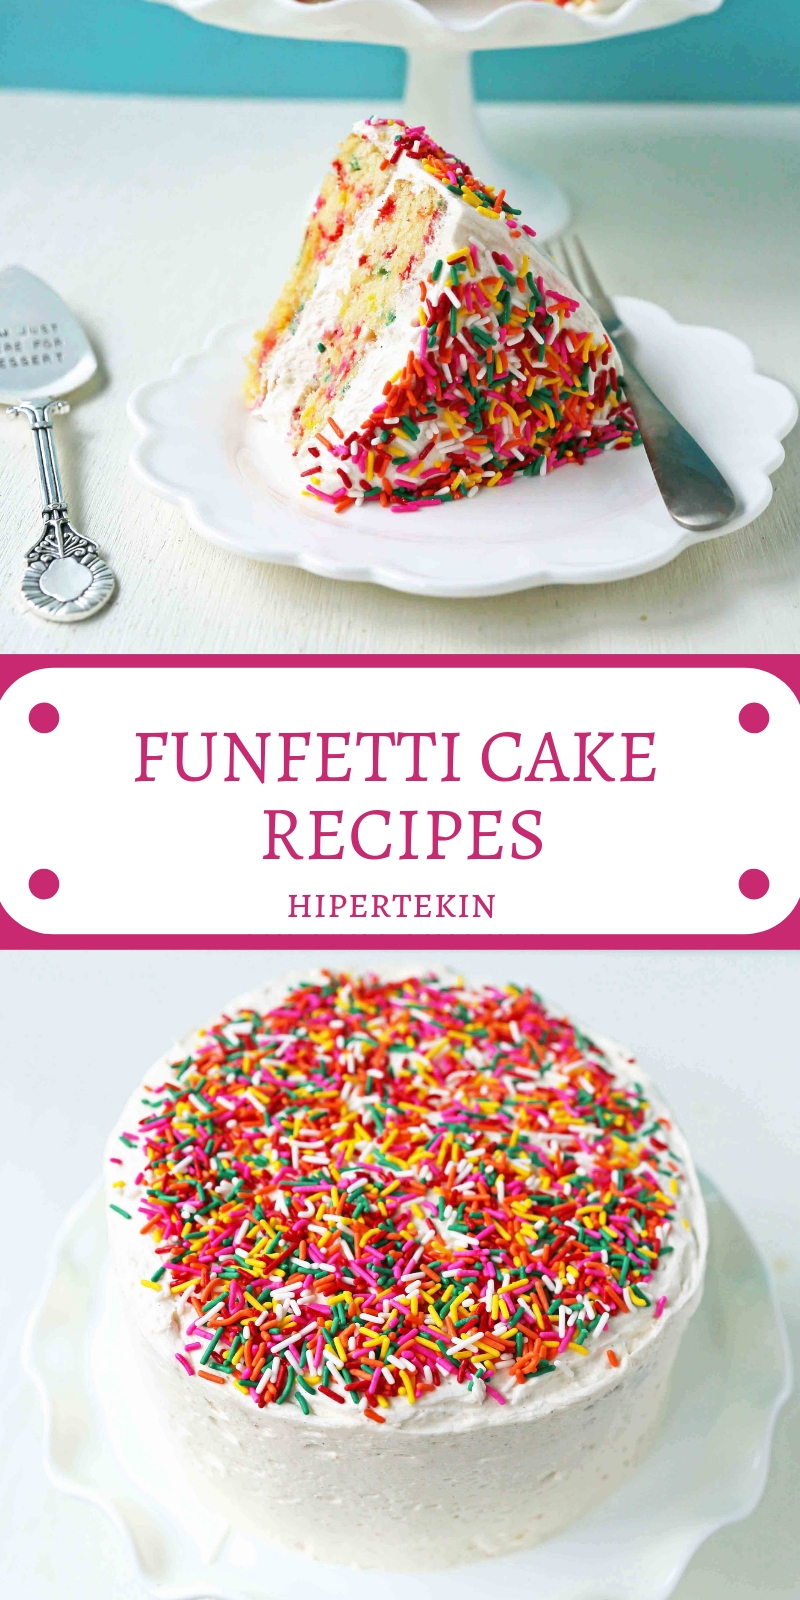 FUNFETTI CAKE RECIPES